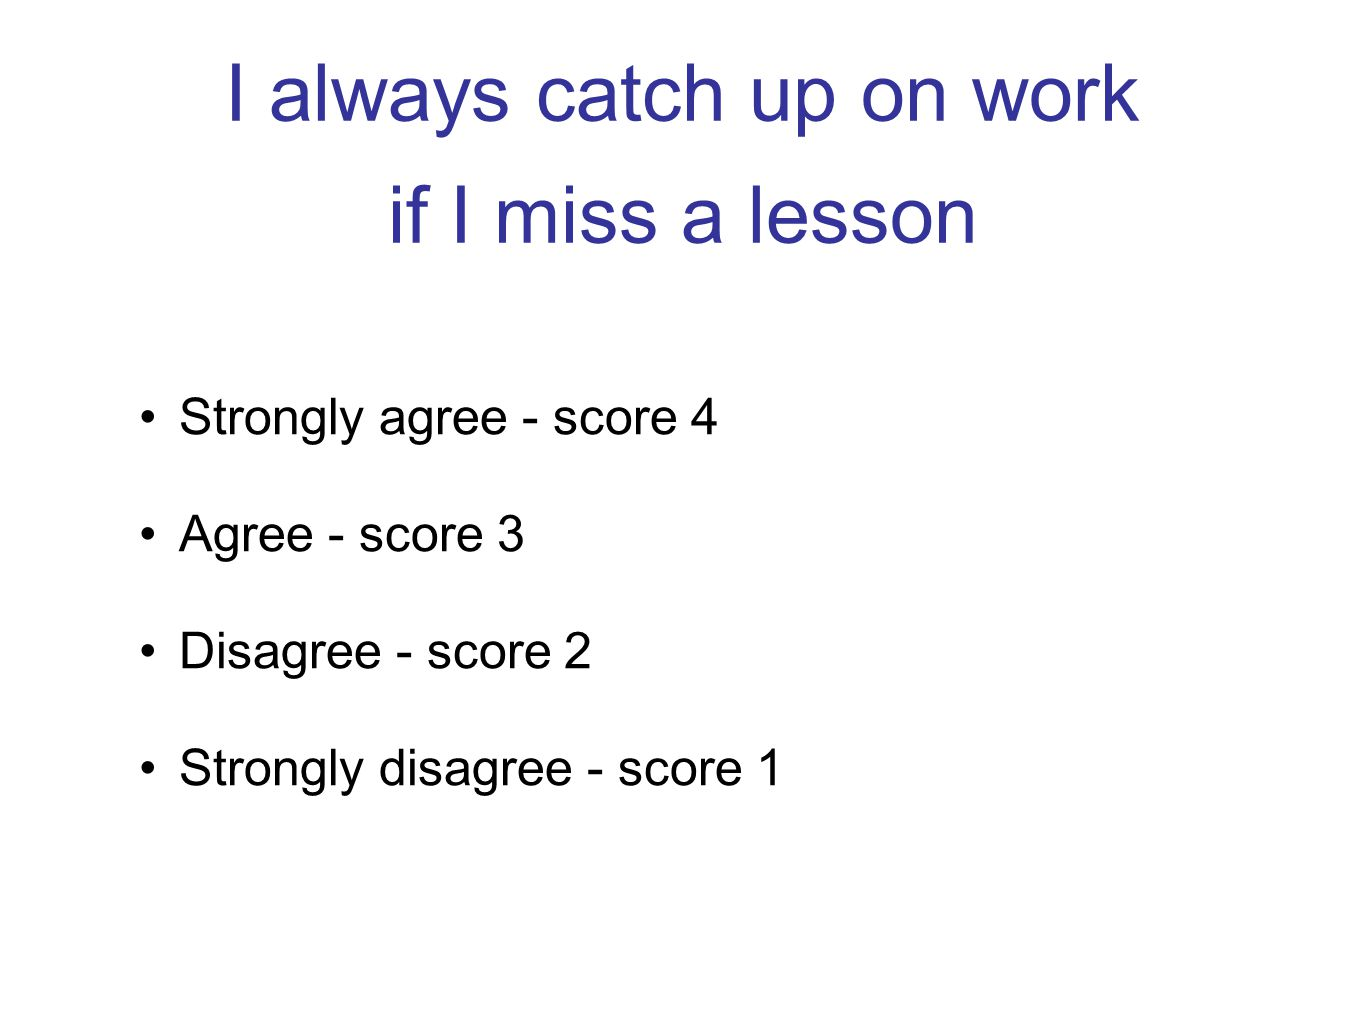 I always catch up on work if I miss a lesson Strongly agree - score 4 Agree - score 3 Disagree - score 2 Strongly disagree - score 1